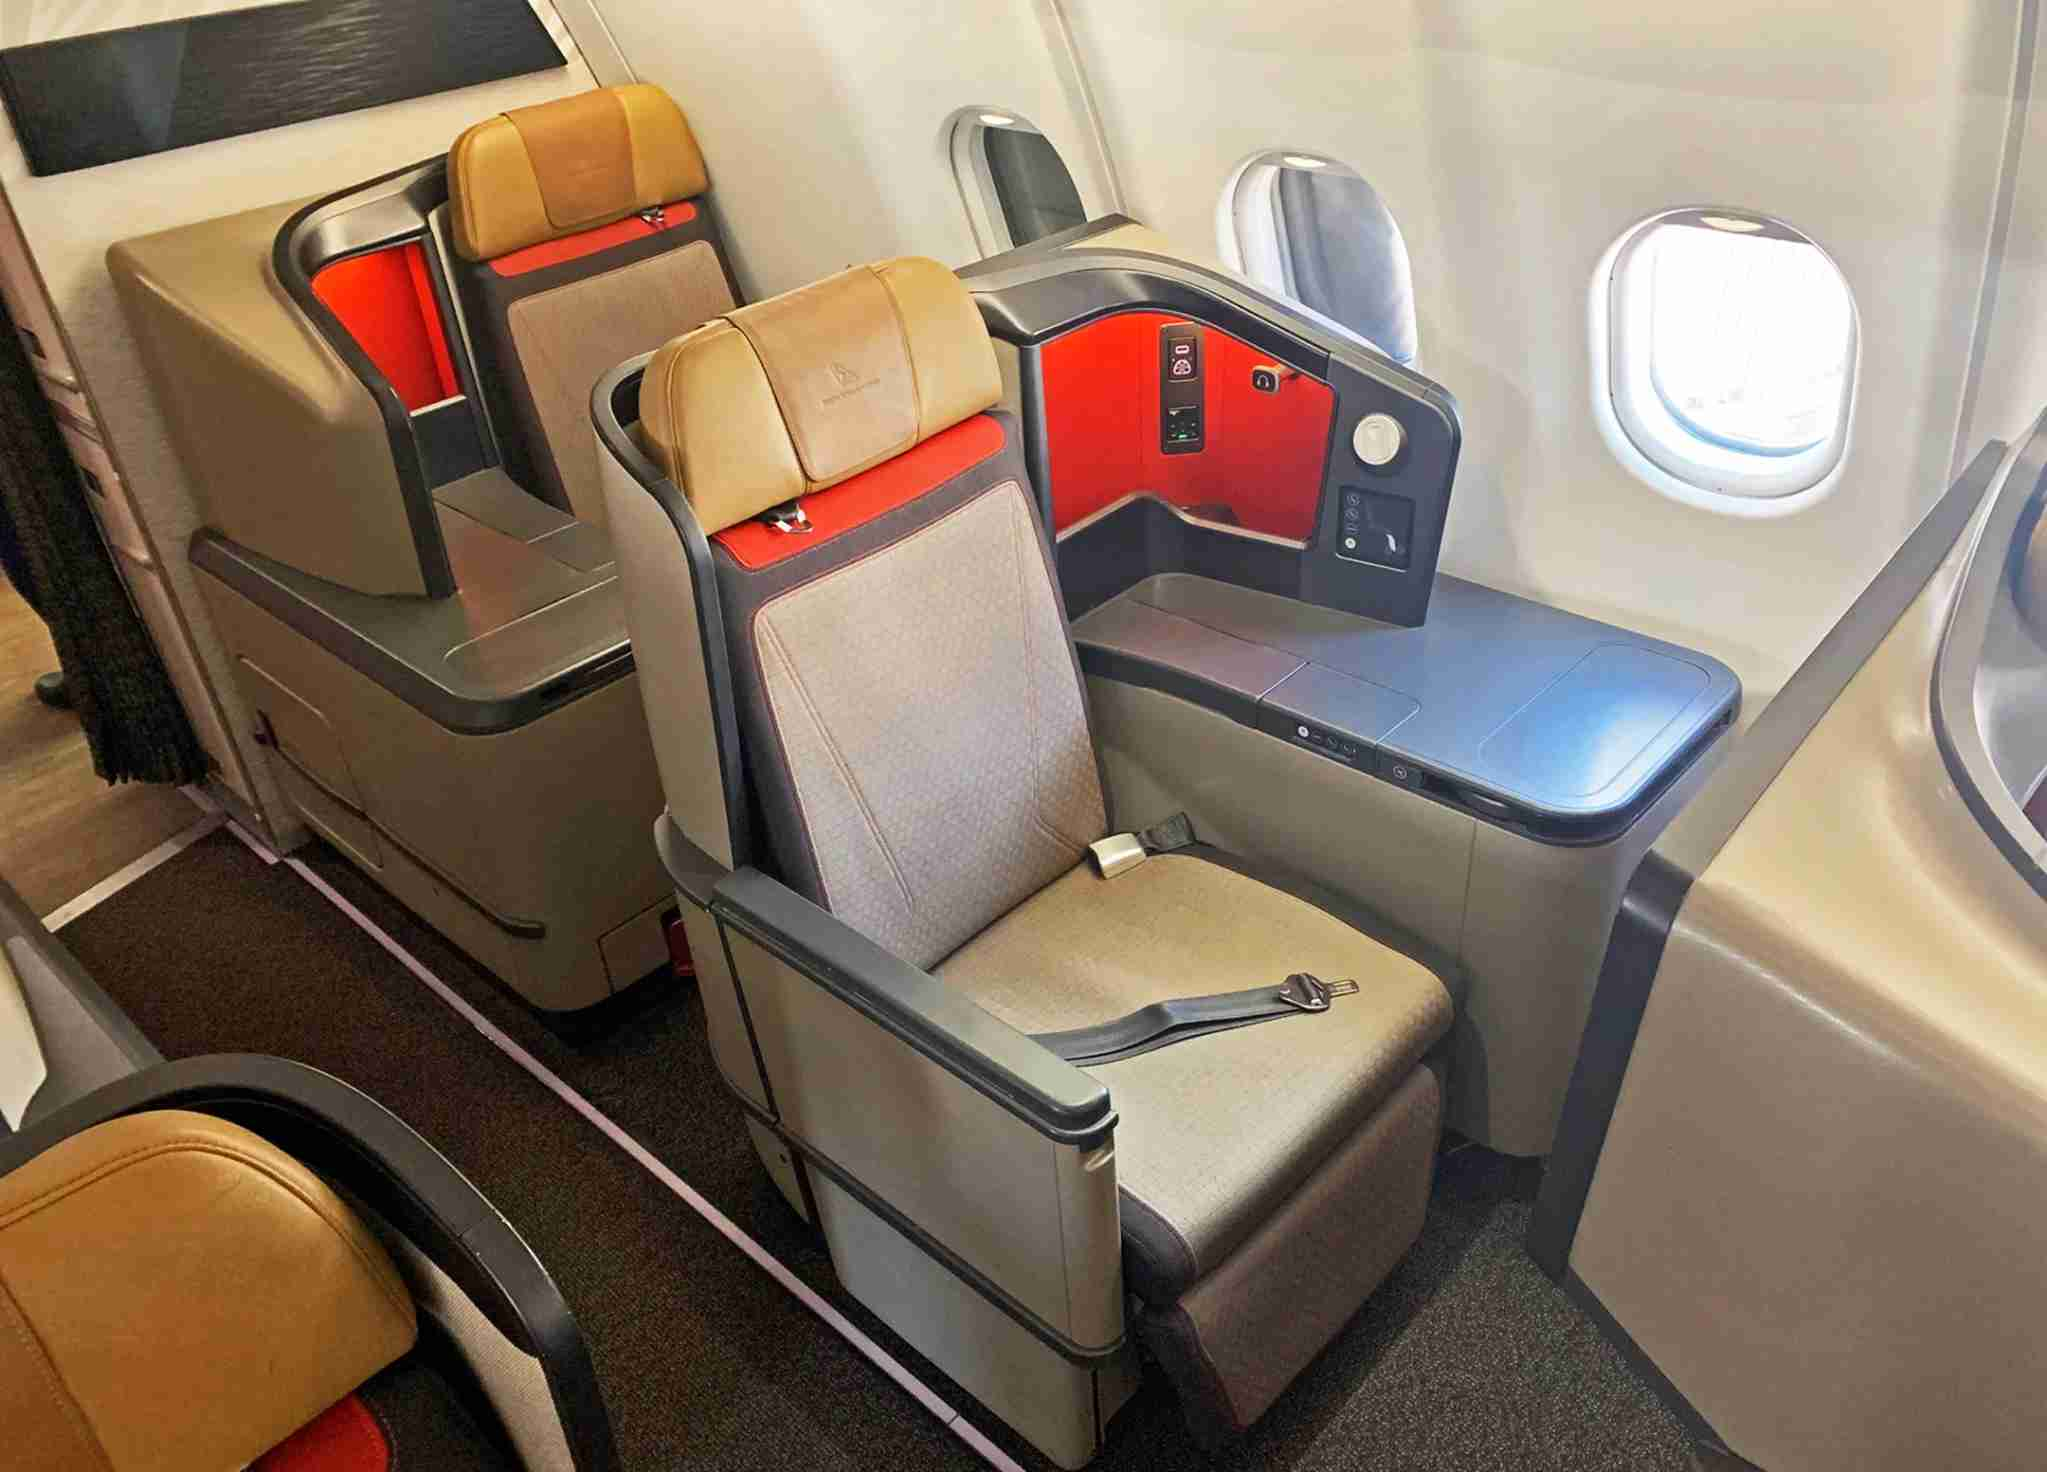 South African Airways A330 business class seat (Photo by Patrick Smith)